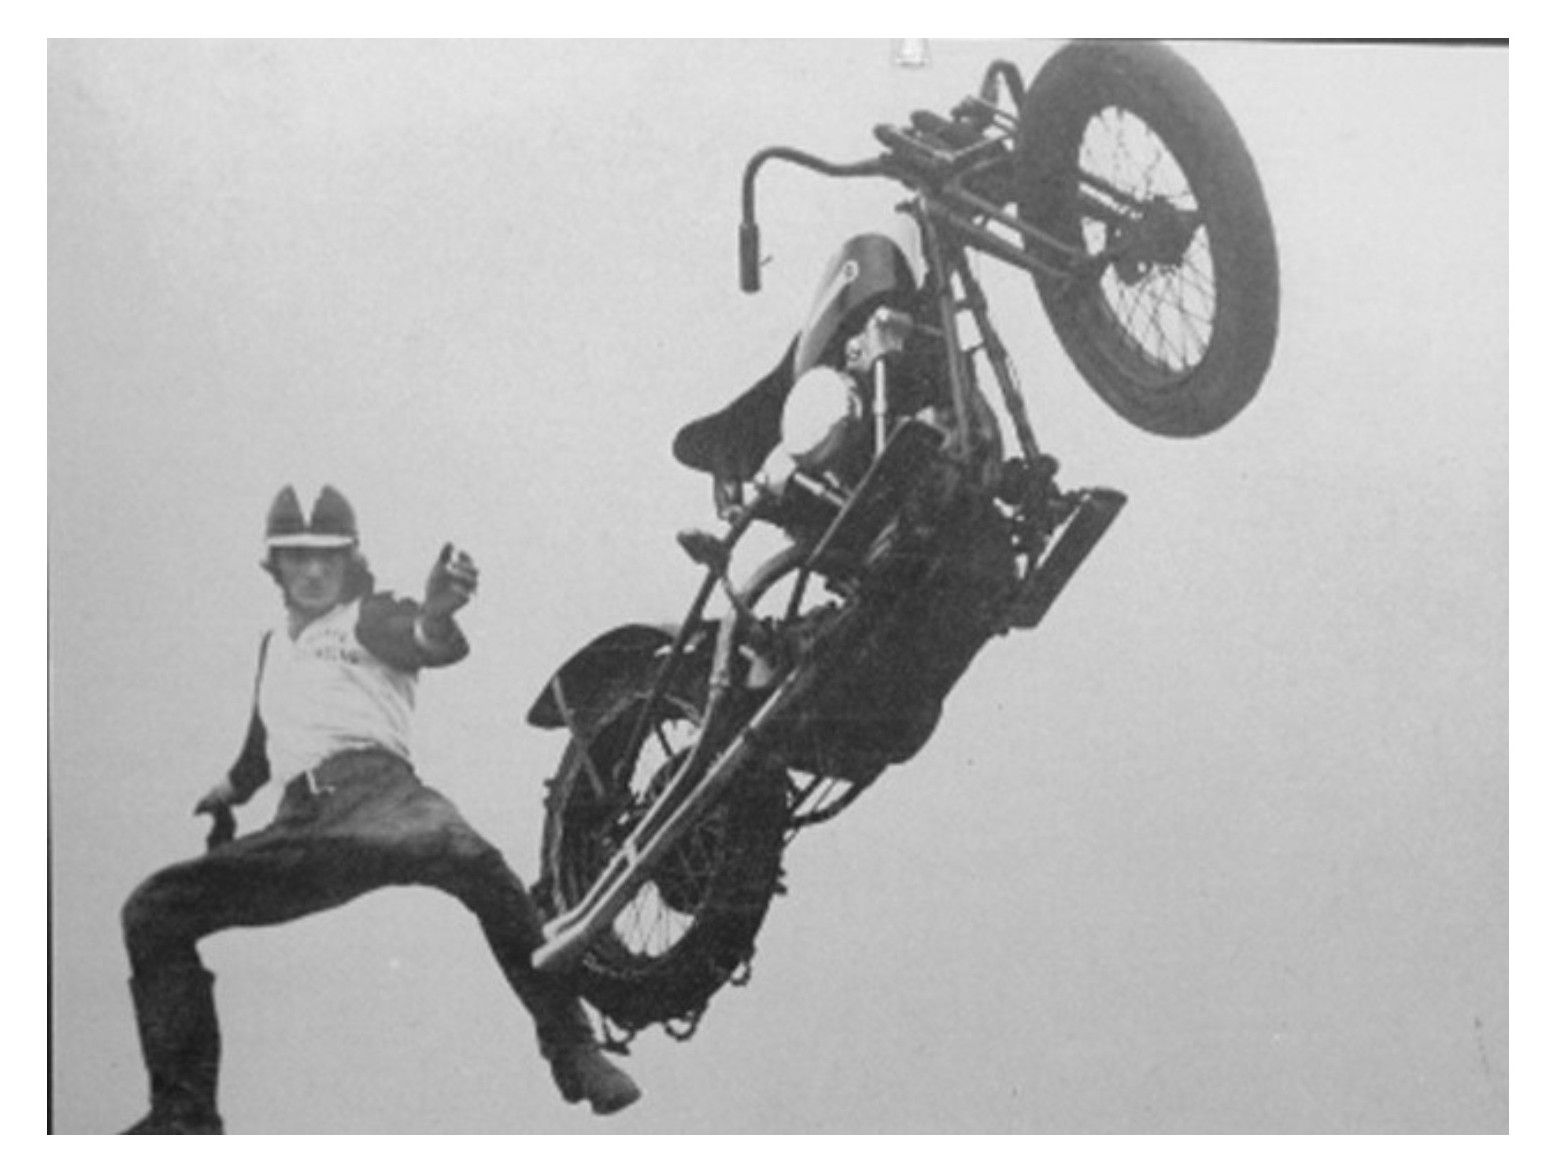 dismounting with style (Vintage Hill Climber) #motorcycle #motorbike